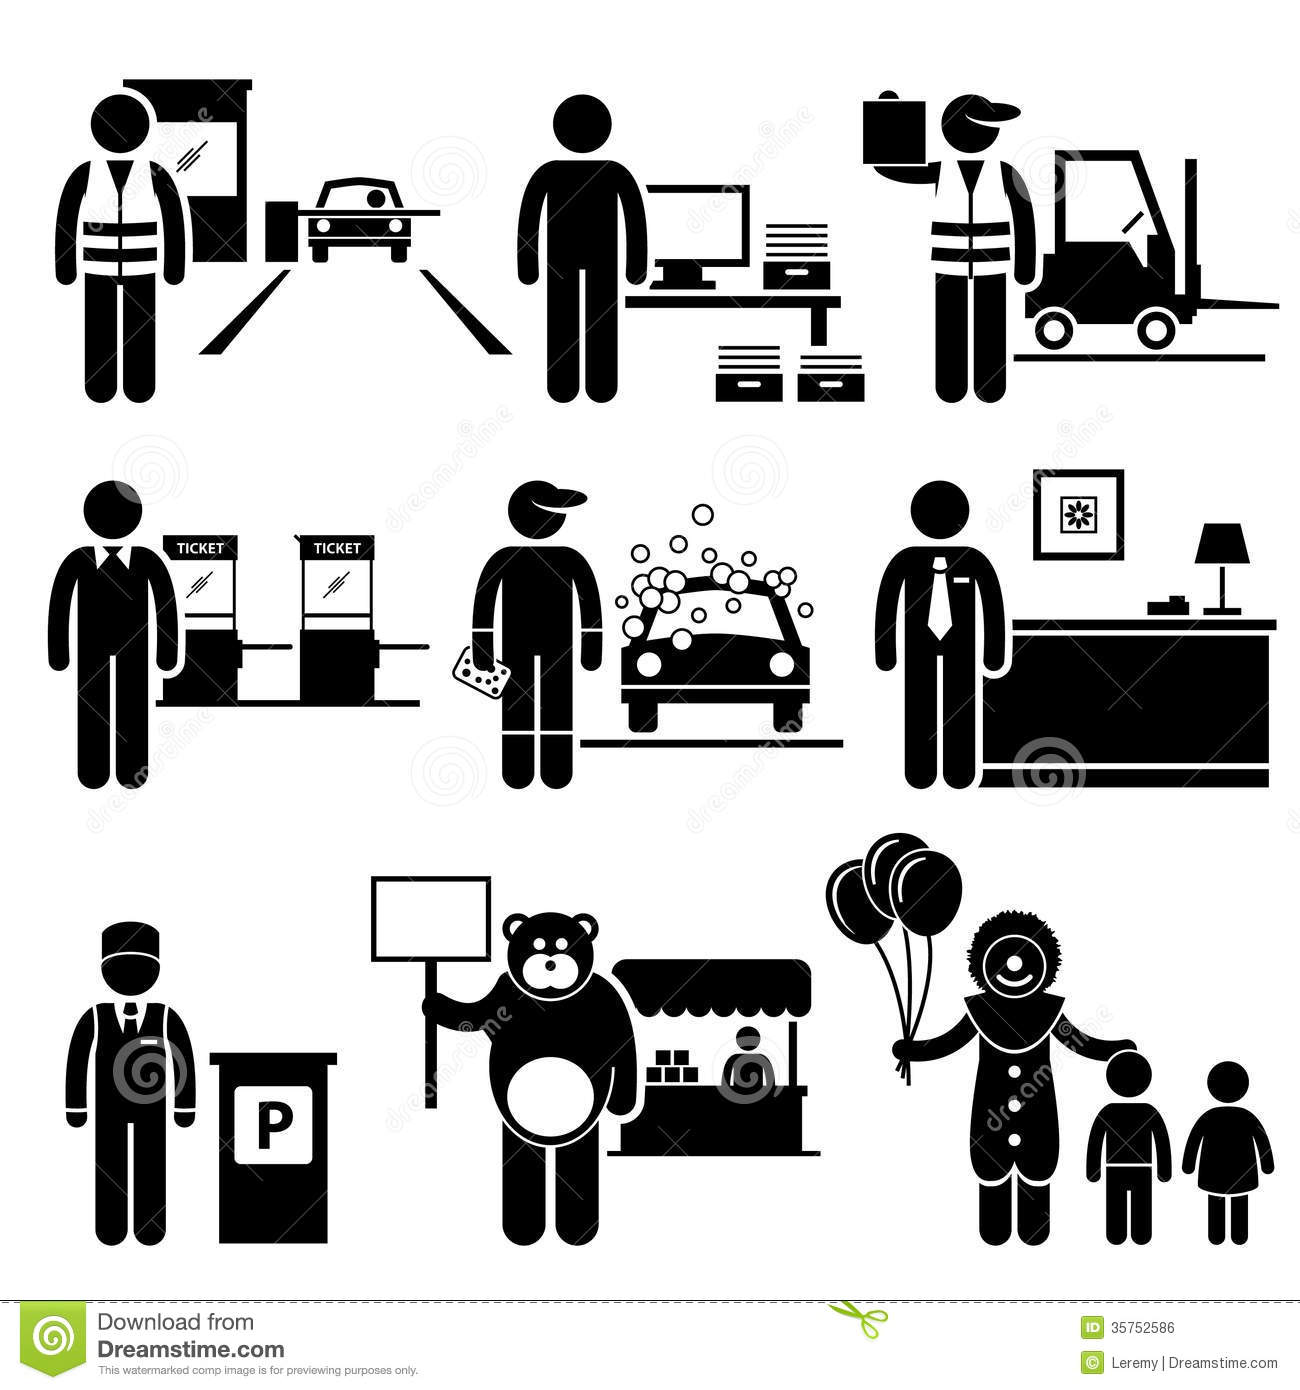 Lower class people clipart vector royalty free library Lower class people clipart - ClipartFest vector royalty free library